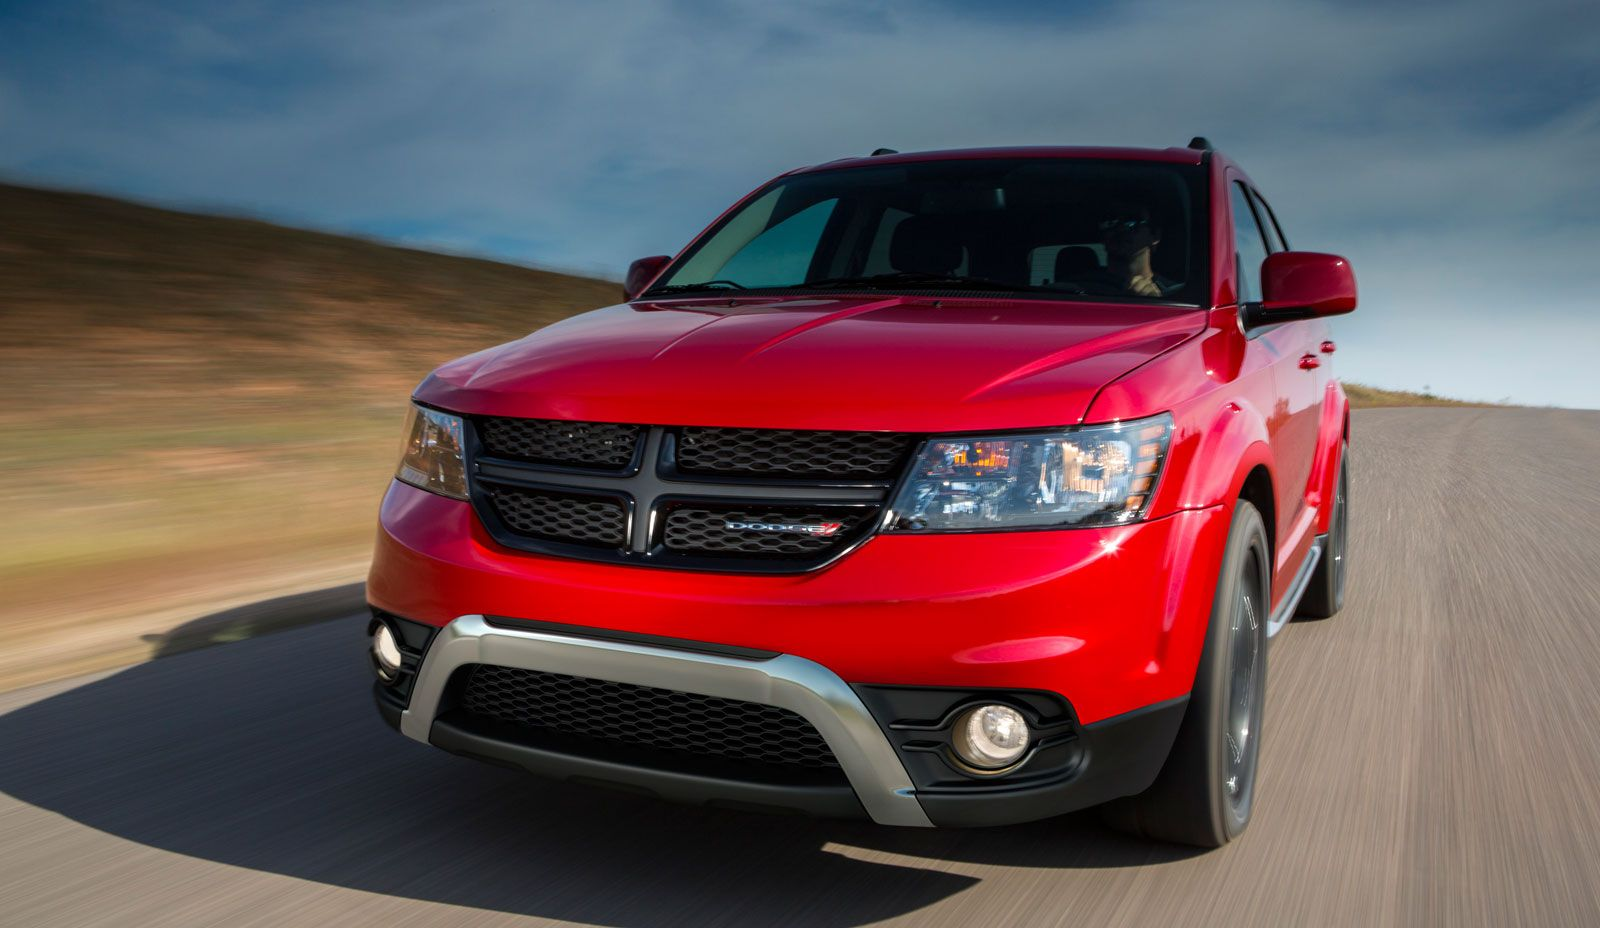 2014 dodge journey crossroad special edition crossover visit http www jimclickdodge